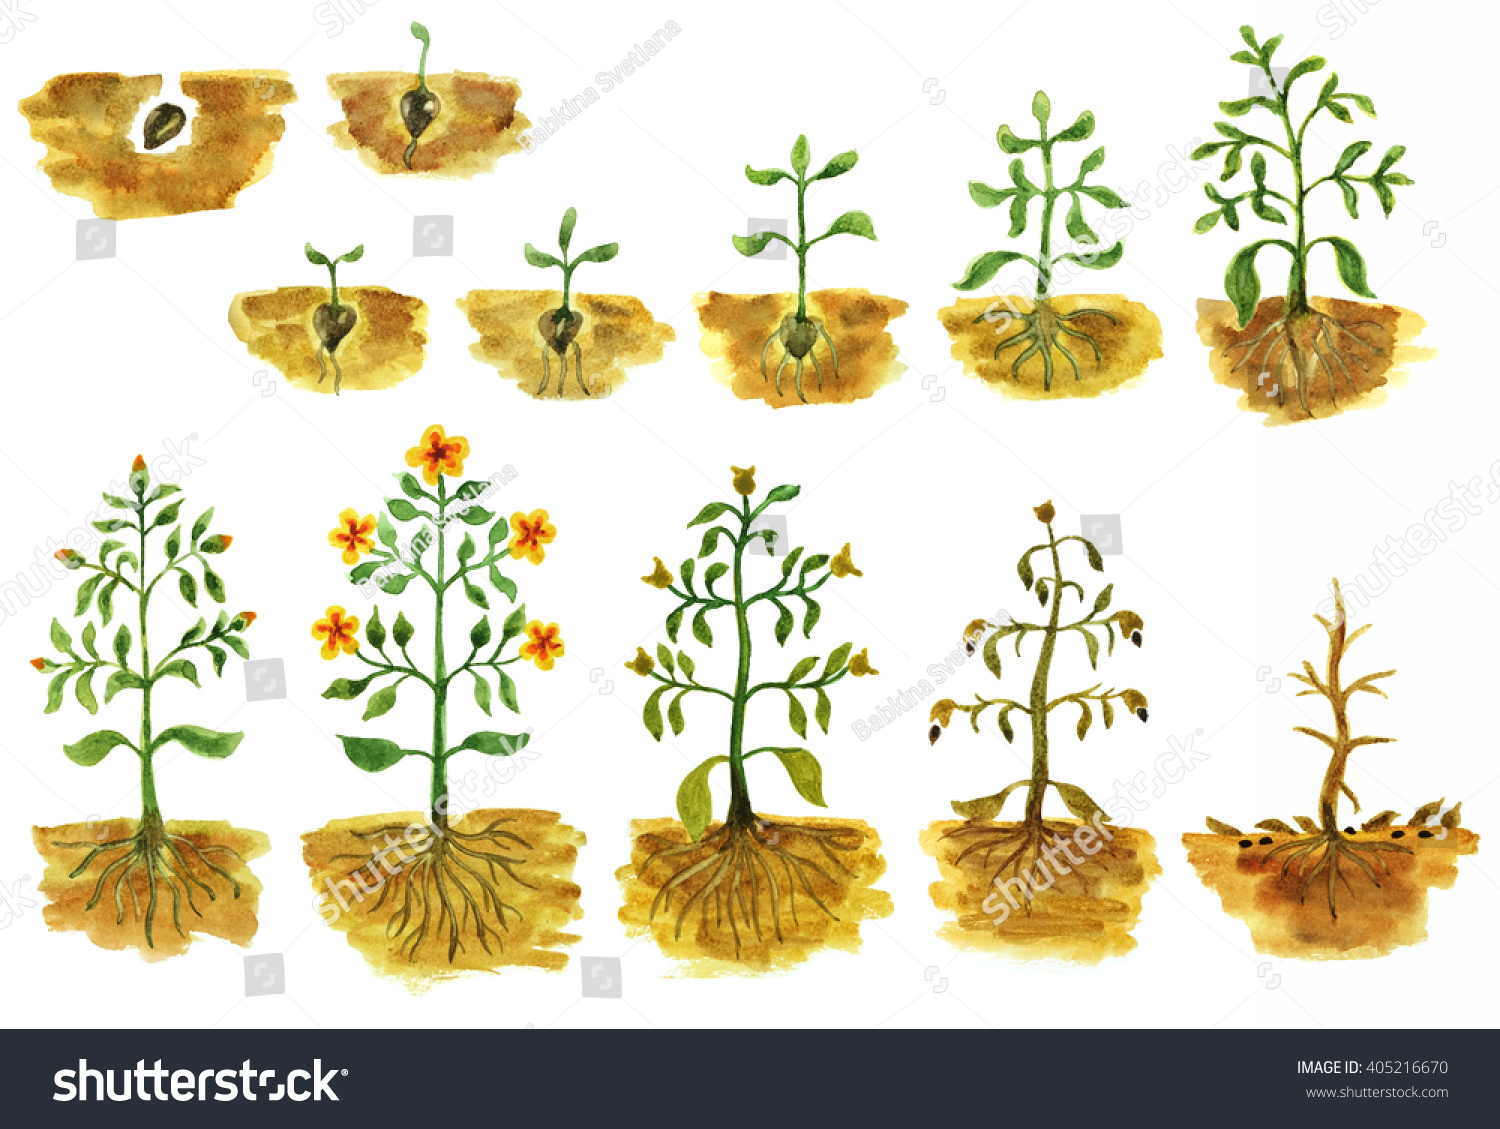 Hand Painted Watercolor Illustration Plants Growing Stock